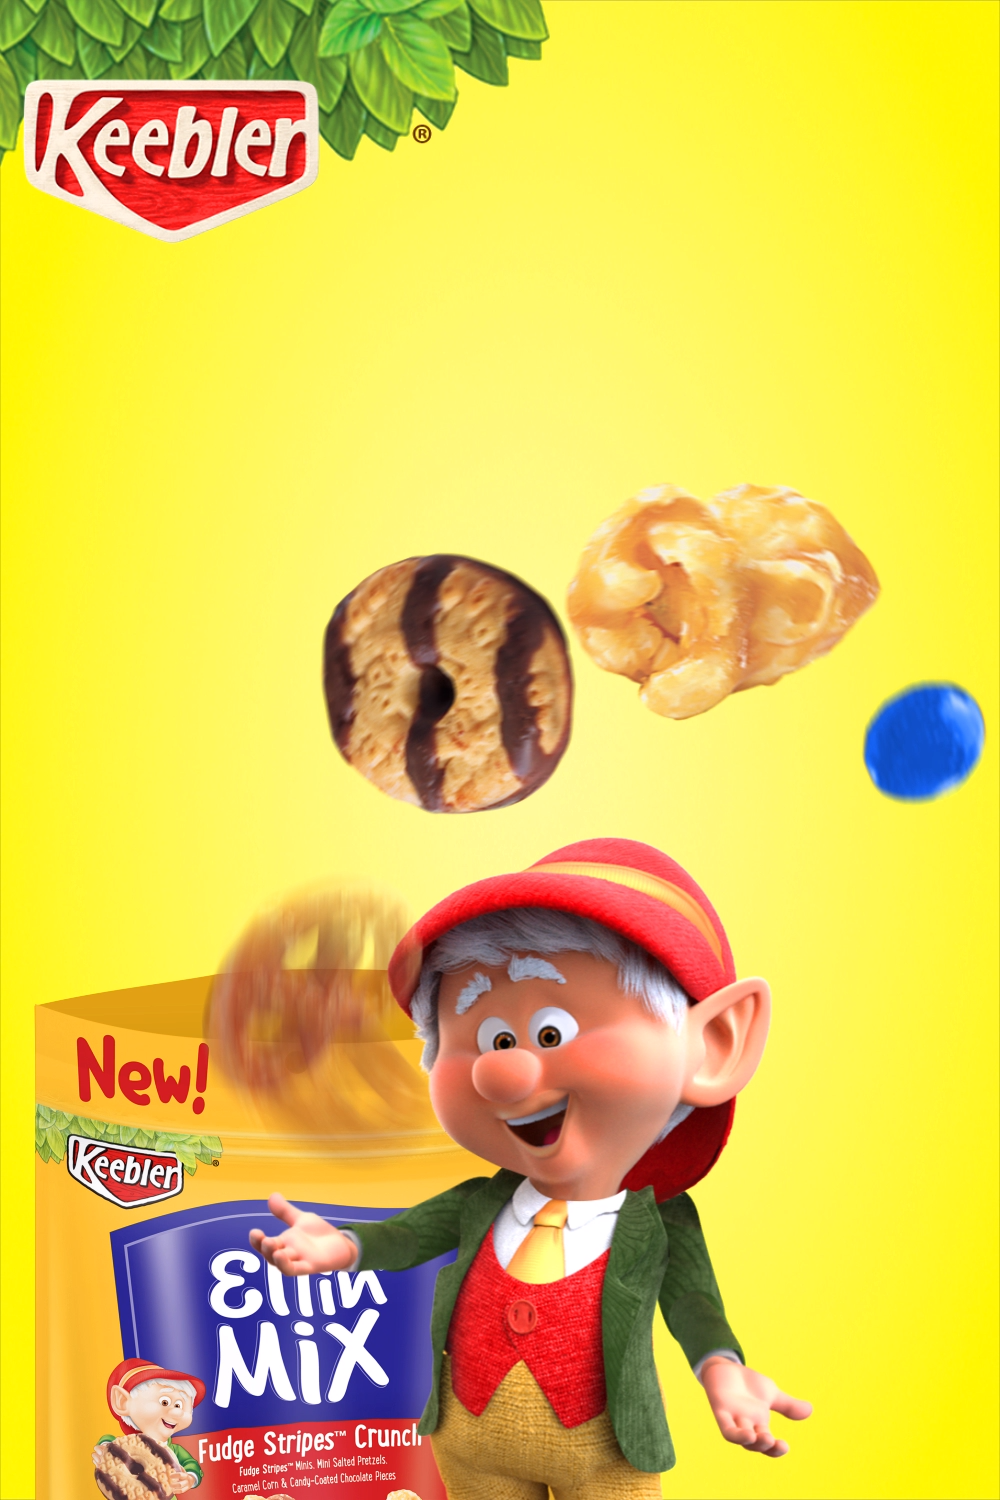 Keebler Elfin Mix is the perfect balance of sweet and salty: Mini Fudge Stripes, caramel corn, pretzels, and candy-coated chocolates!